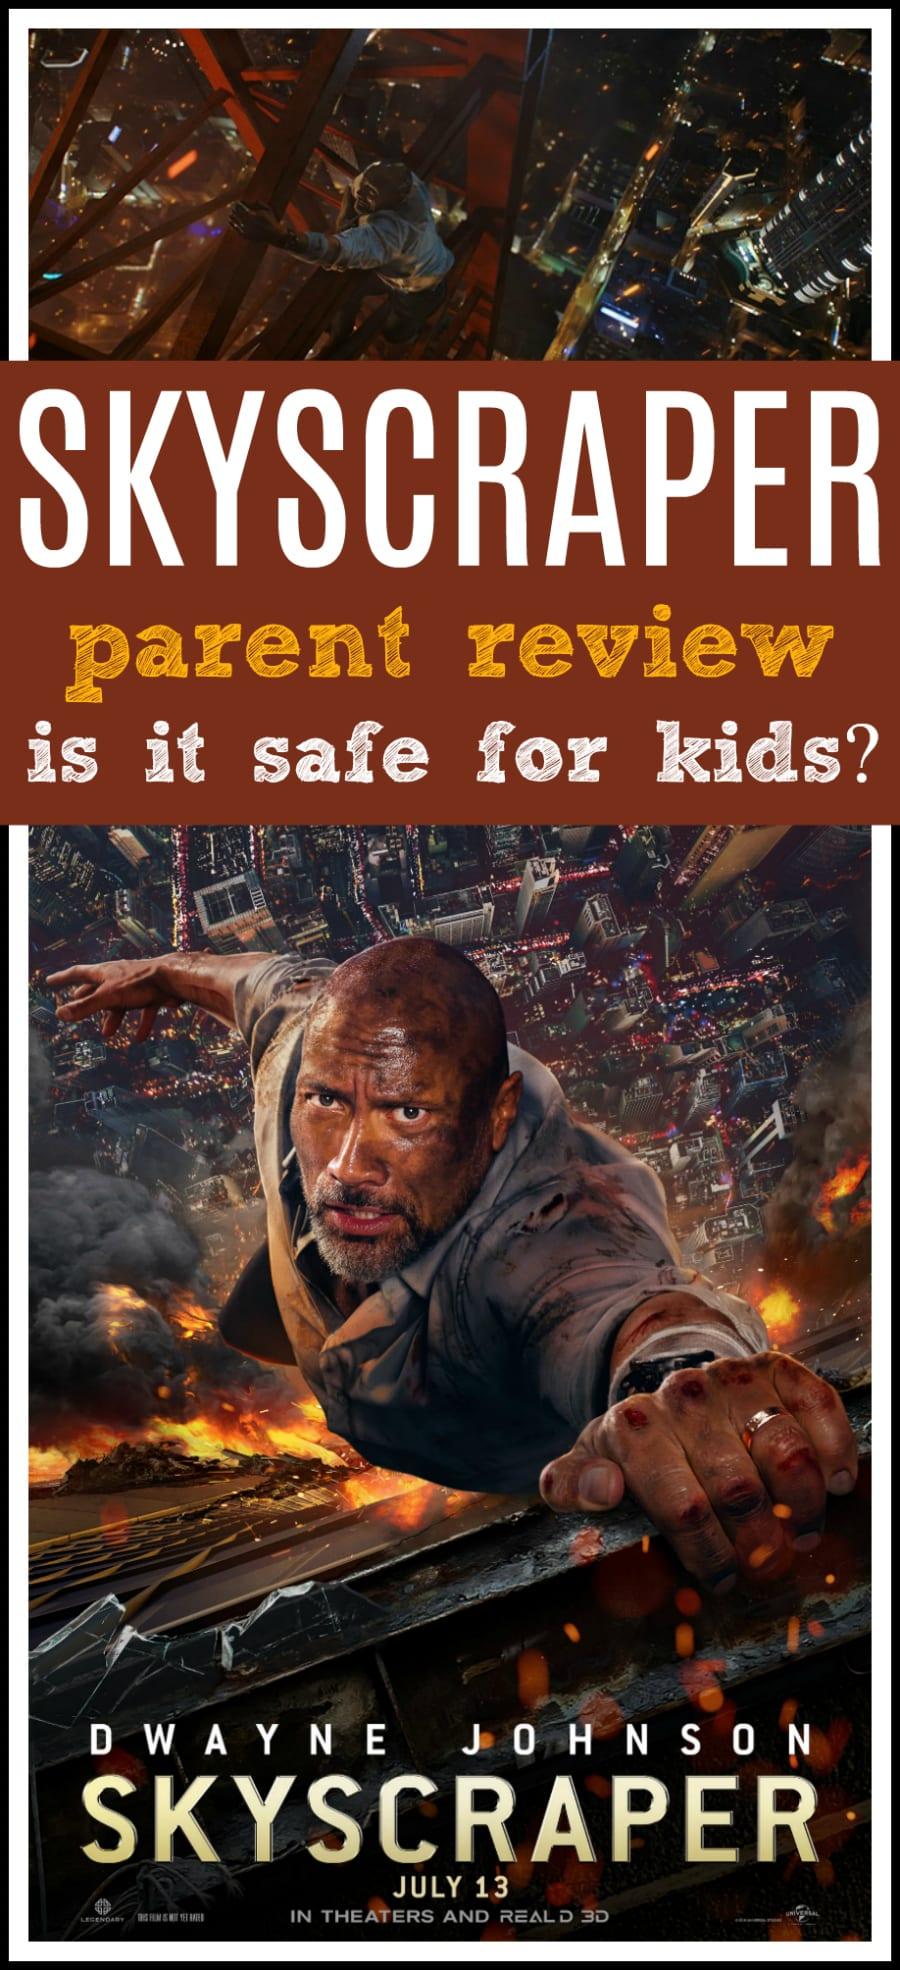 Skyscraper movie review for children